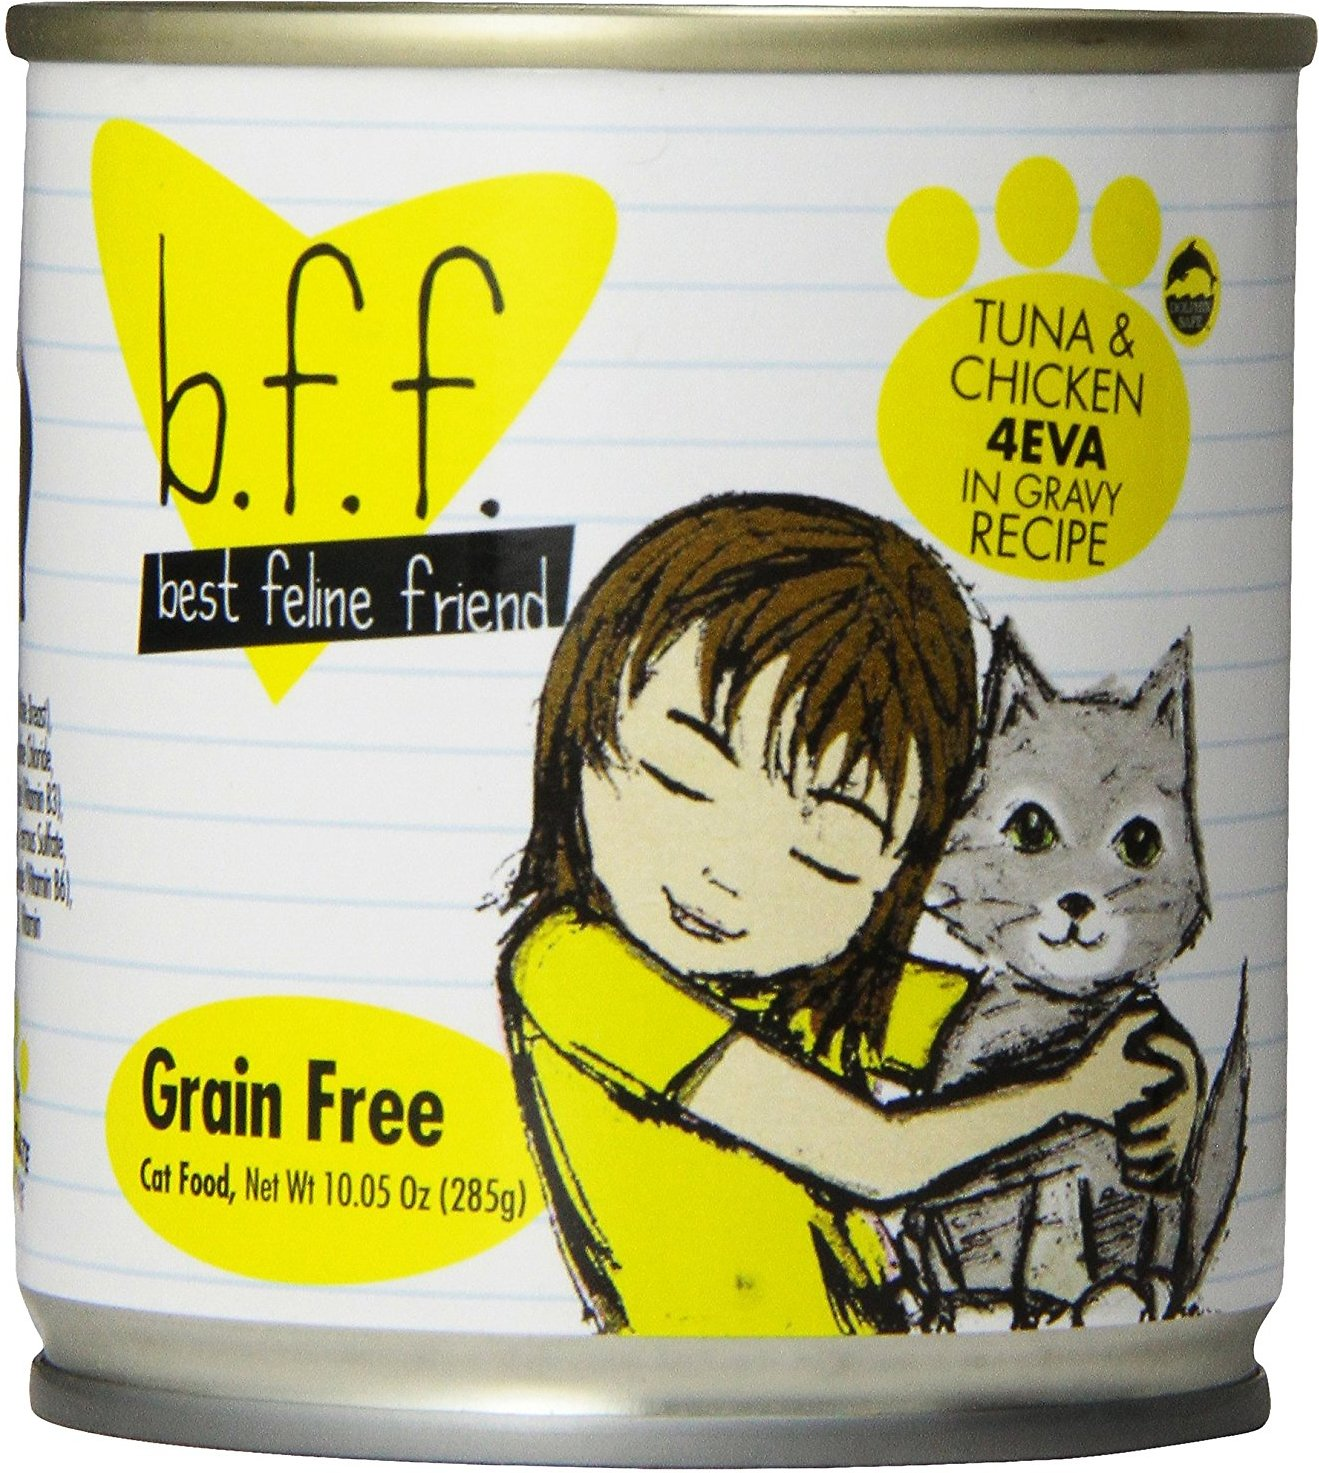 BFF Tuna & Chicken 4EVA Recipe in Gravy Grain-Free Canned Cat Food Image